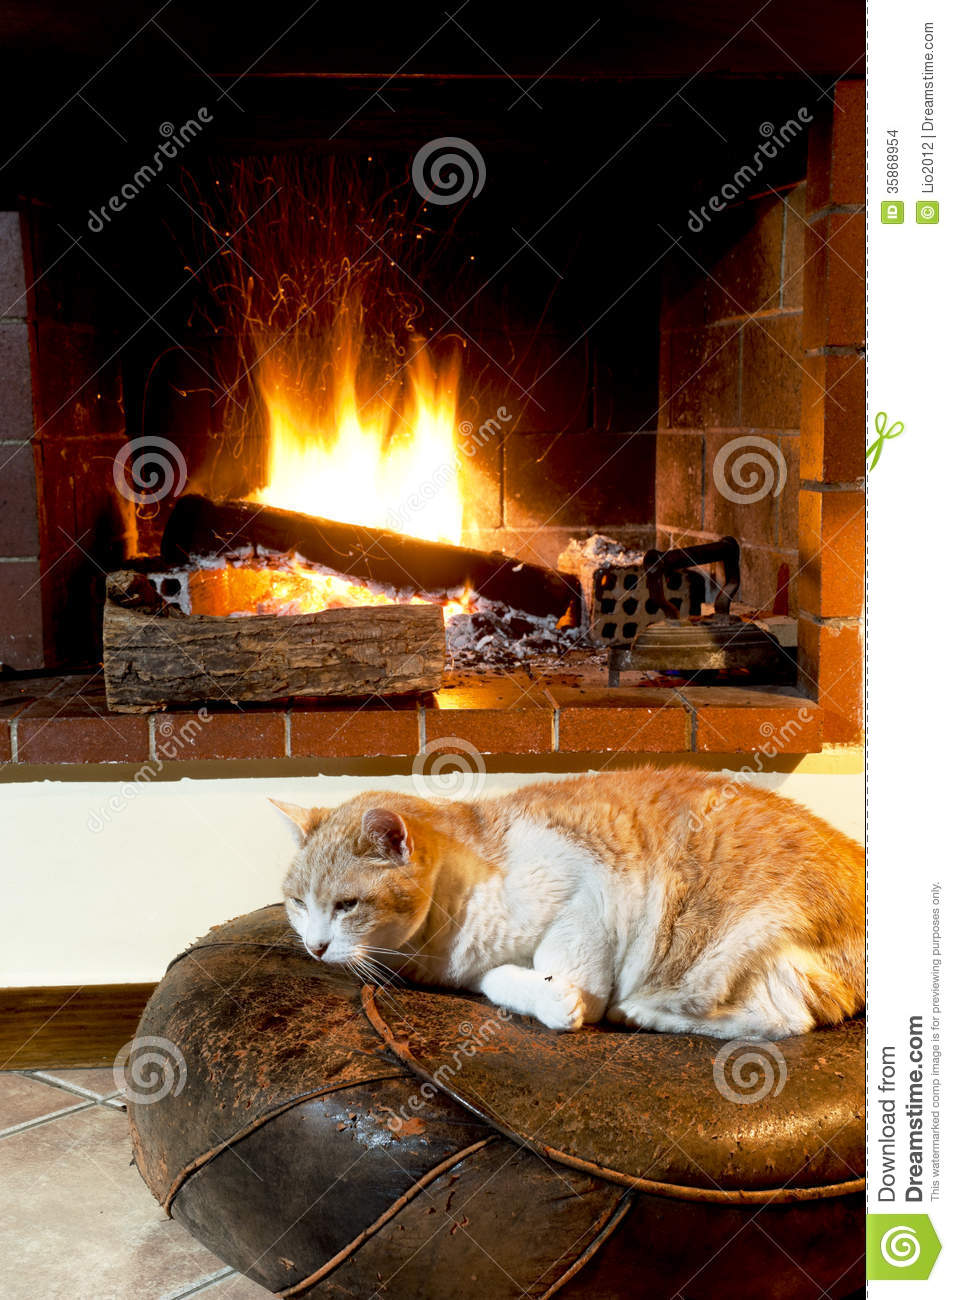 Cat In Front Of Fireplace Stock Photo Image Of Room